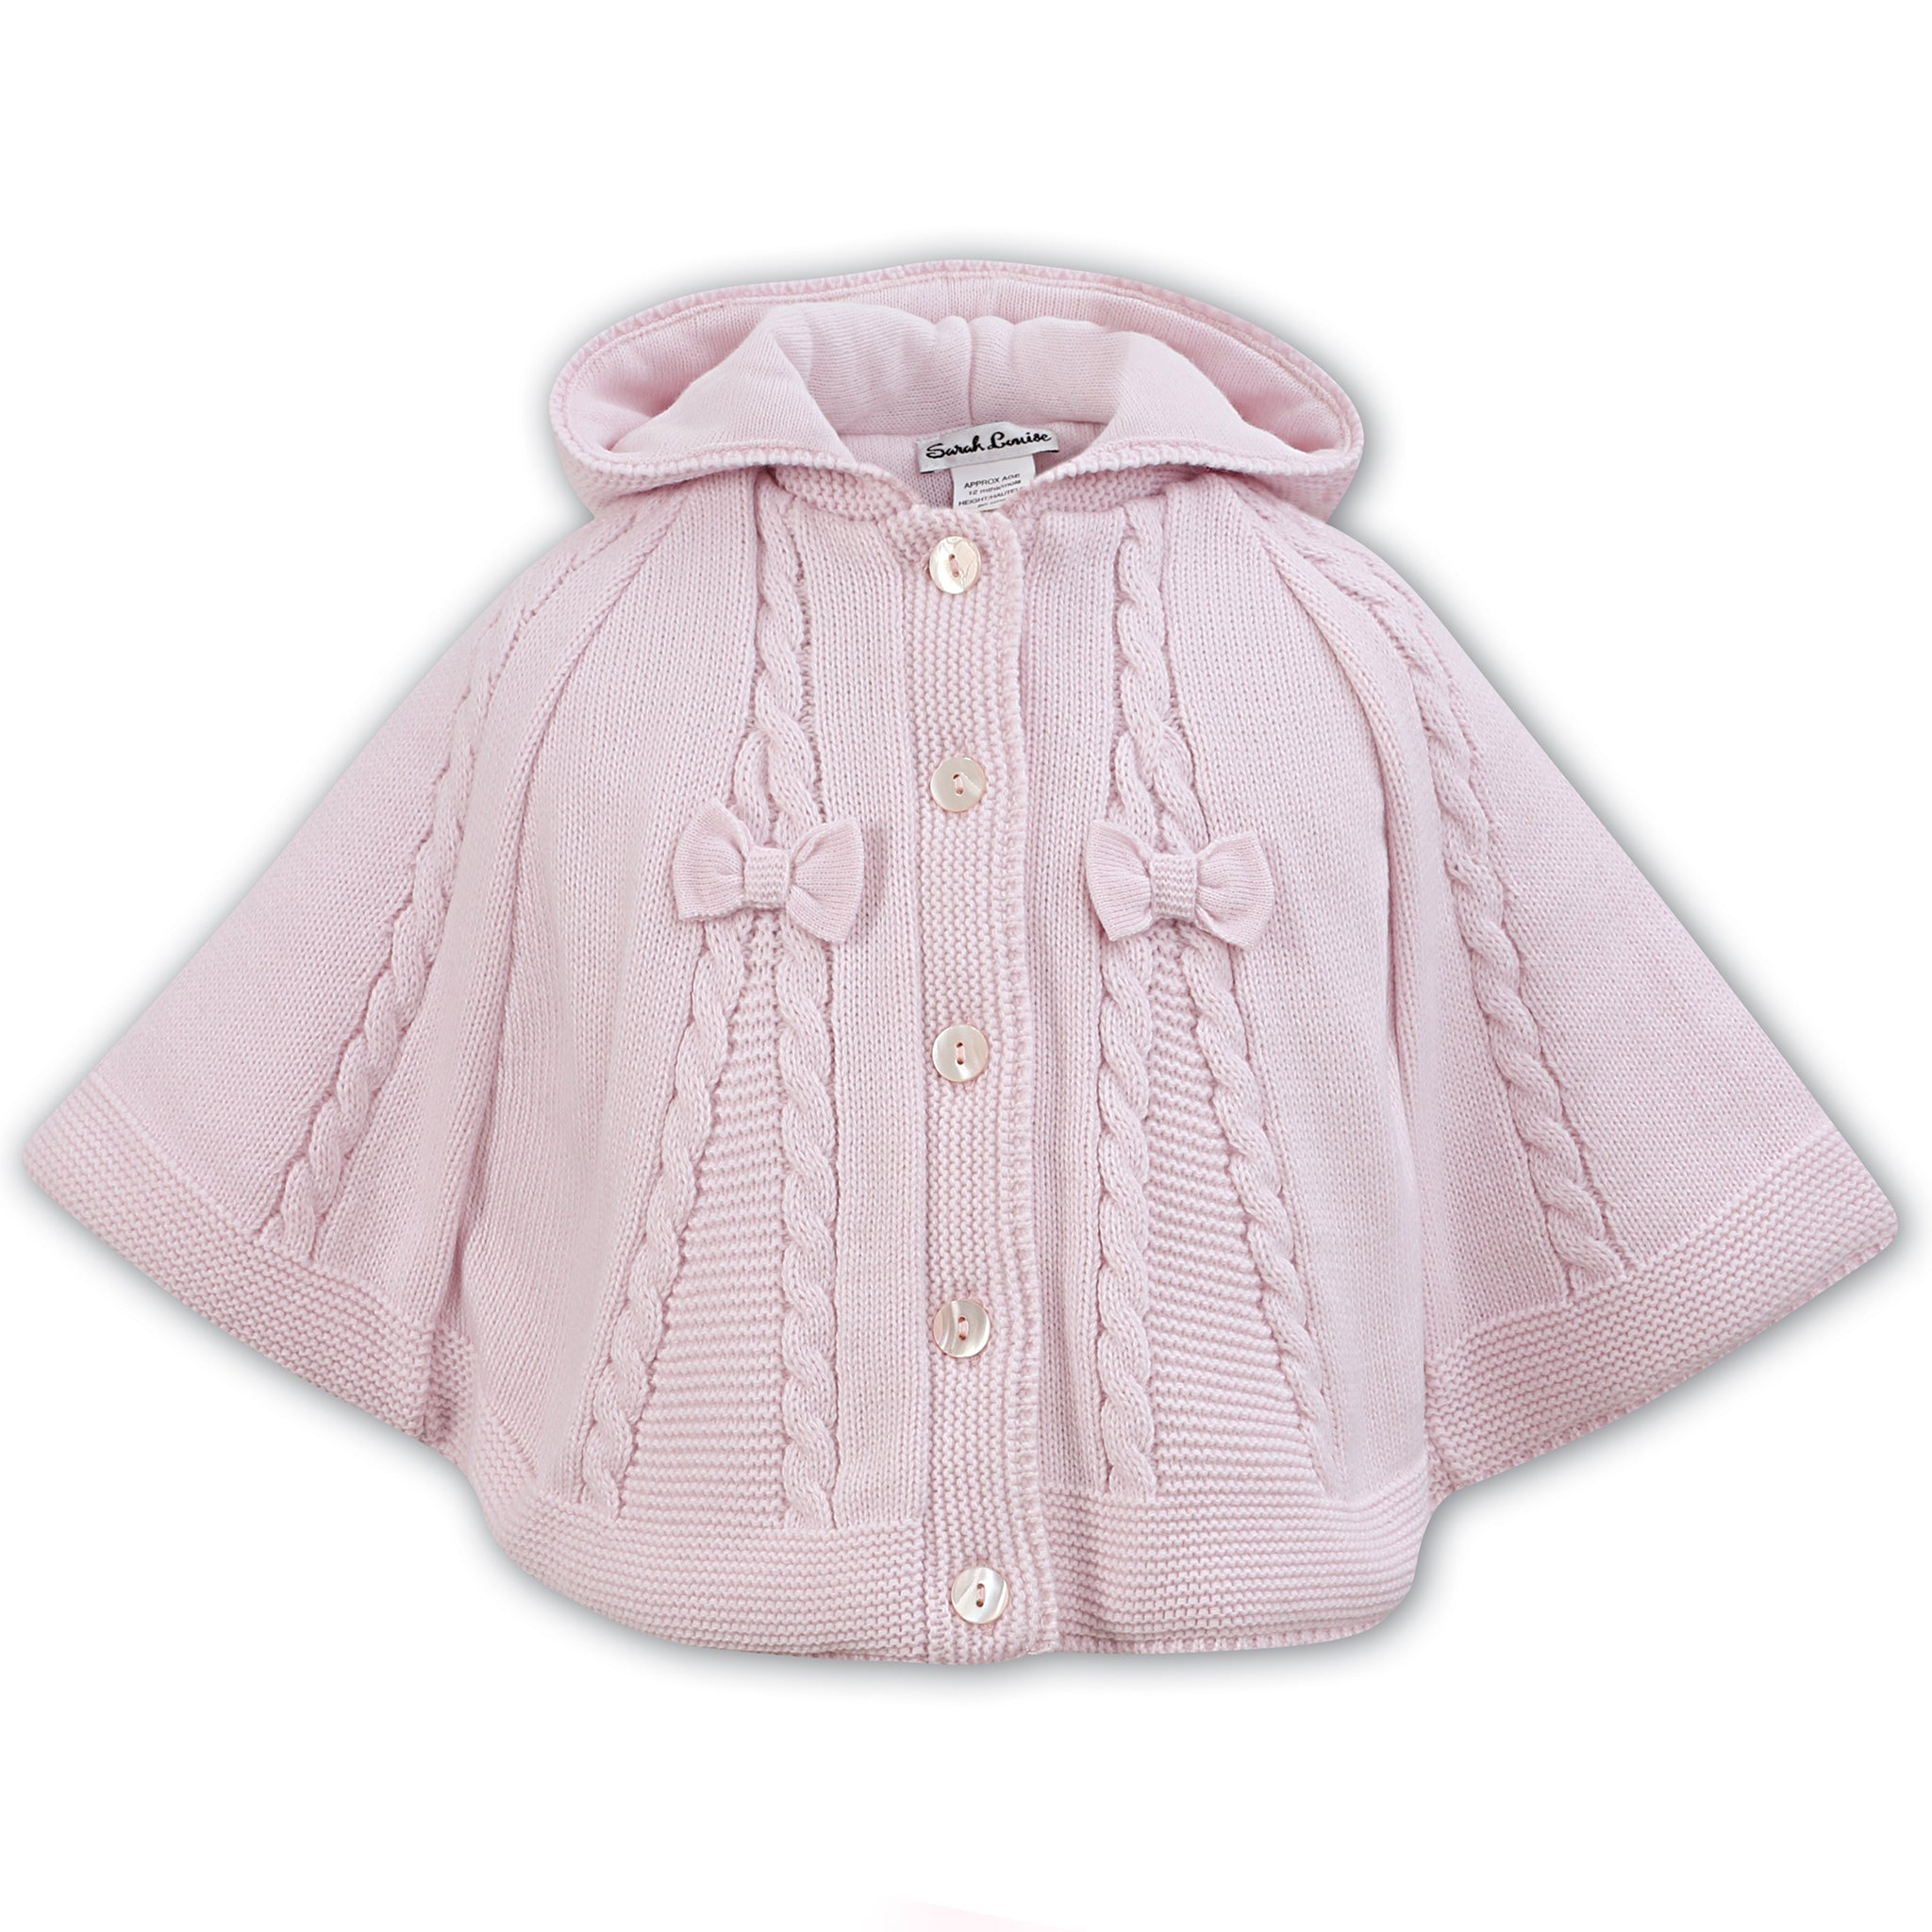 b5784c6210a44 Sarah Louise Baby Girls Pink Knitted Cape